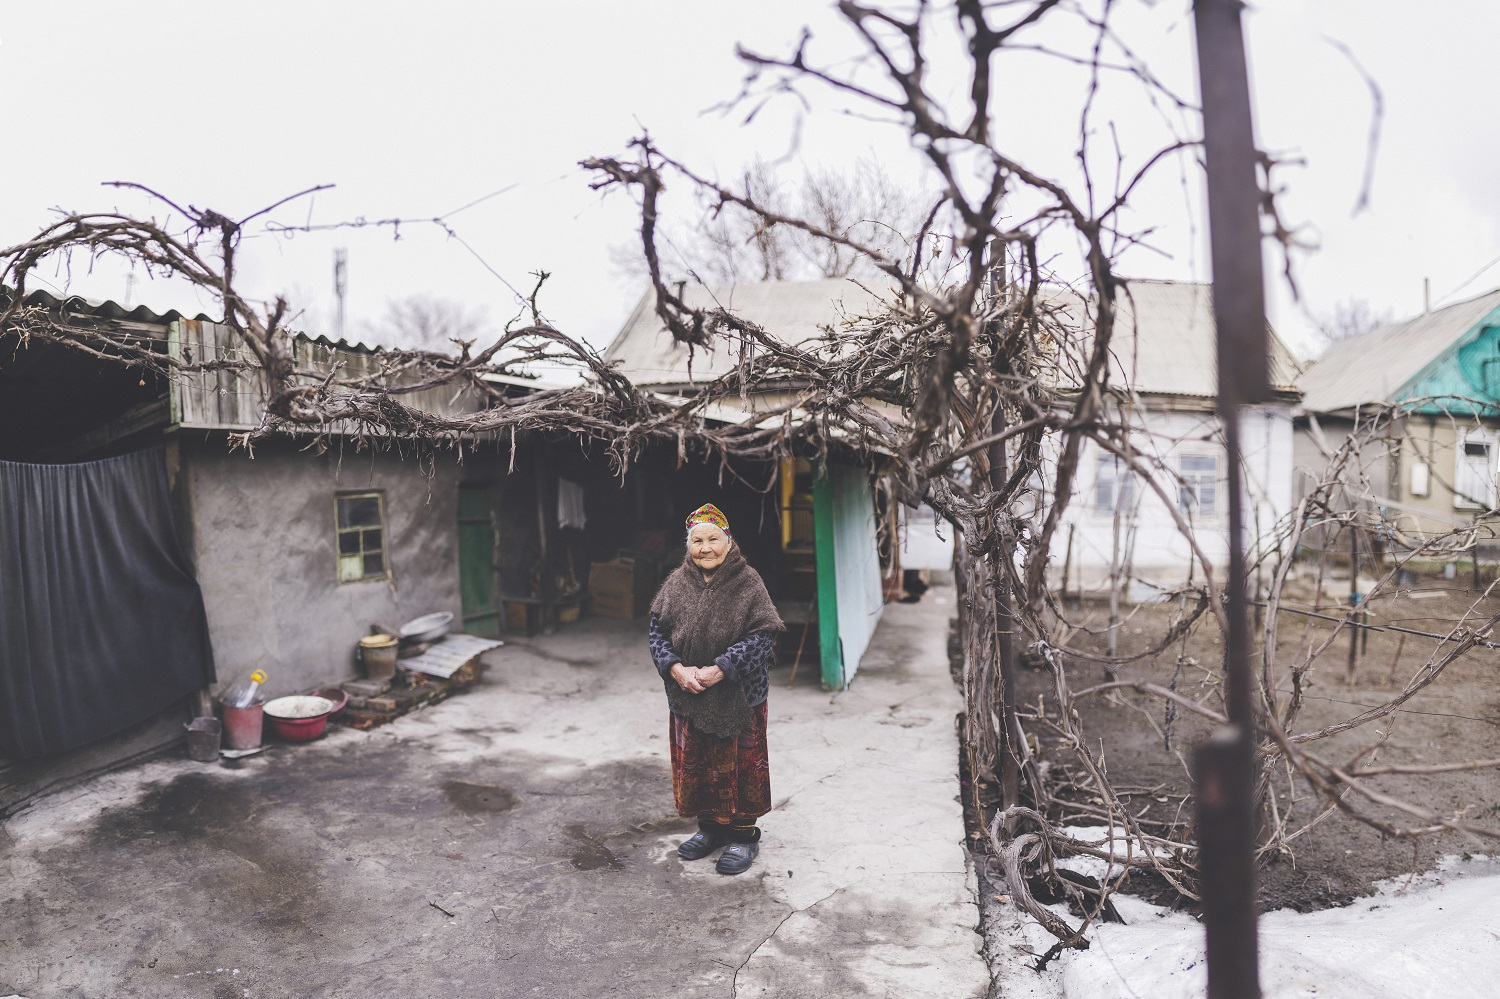 Aleksandra is a member of a self-help group in Kyrgyzstan (c) Malik Alymkulov/HelpAge International